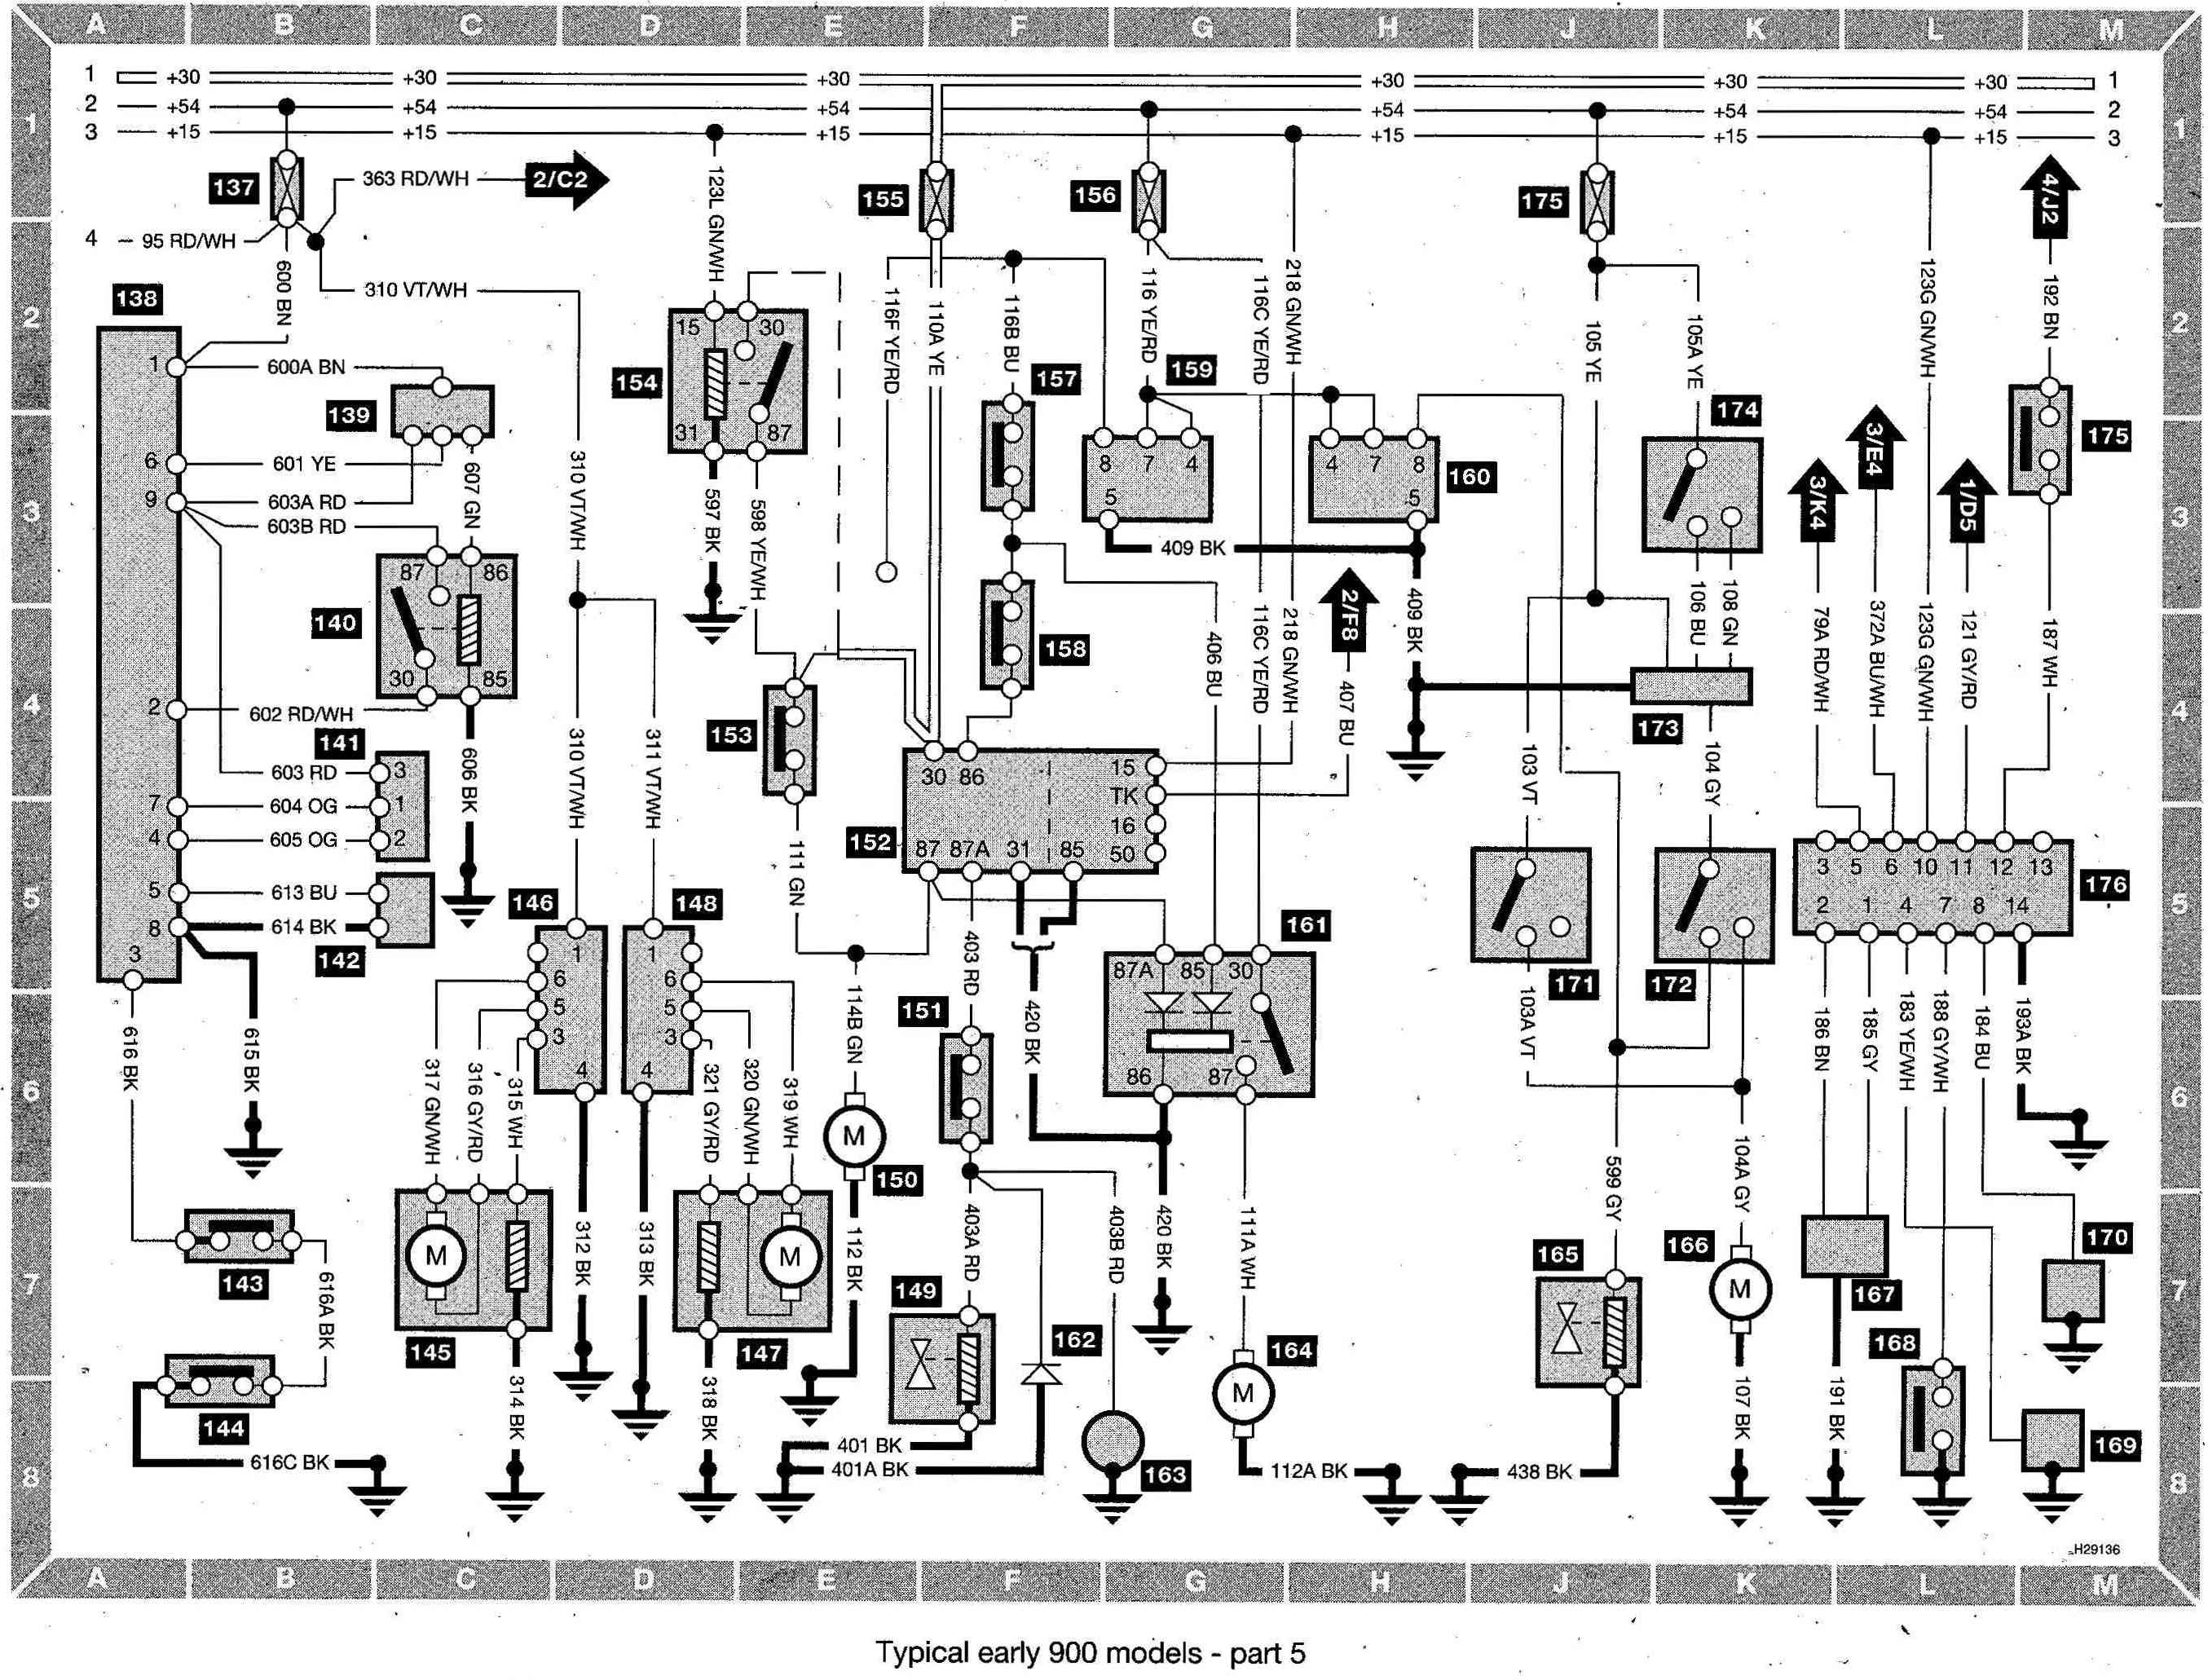 Saab 9 5 Headlight Wiring Diagram: Saab 9 5 Seat Wiring Diagram - Wiring  Diagram